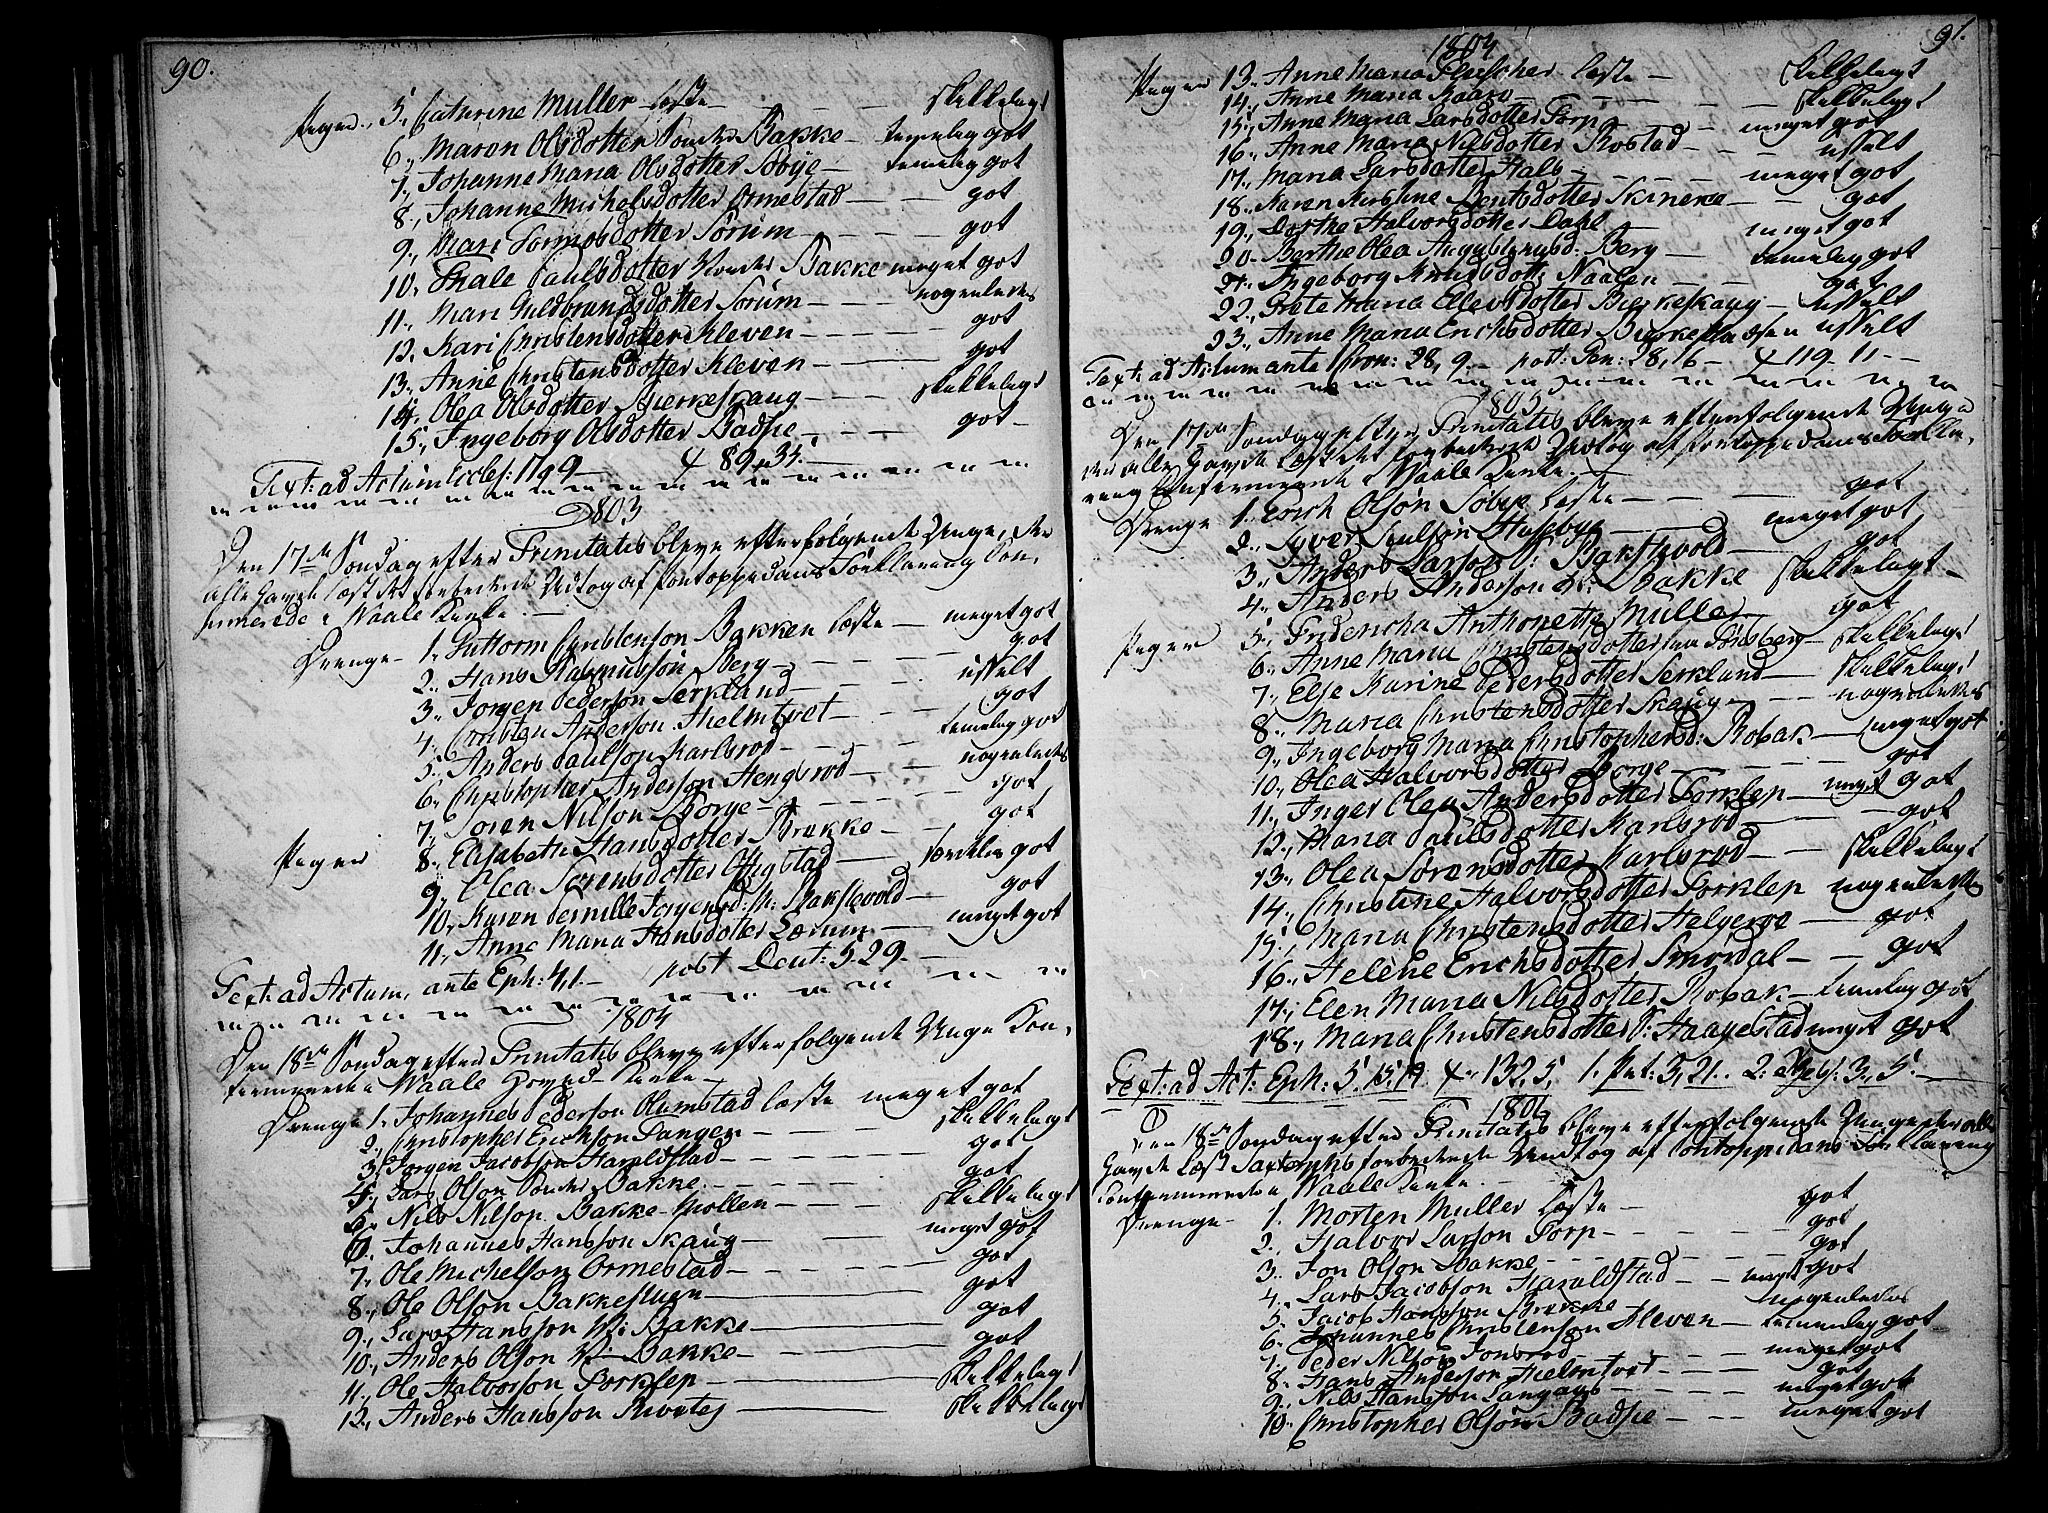 SAKO, Våle kirkebøker, F/Fa/L0005: Parish register (official) no. I 5, 1773-1808, p. 90-91